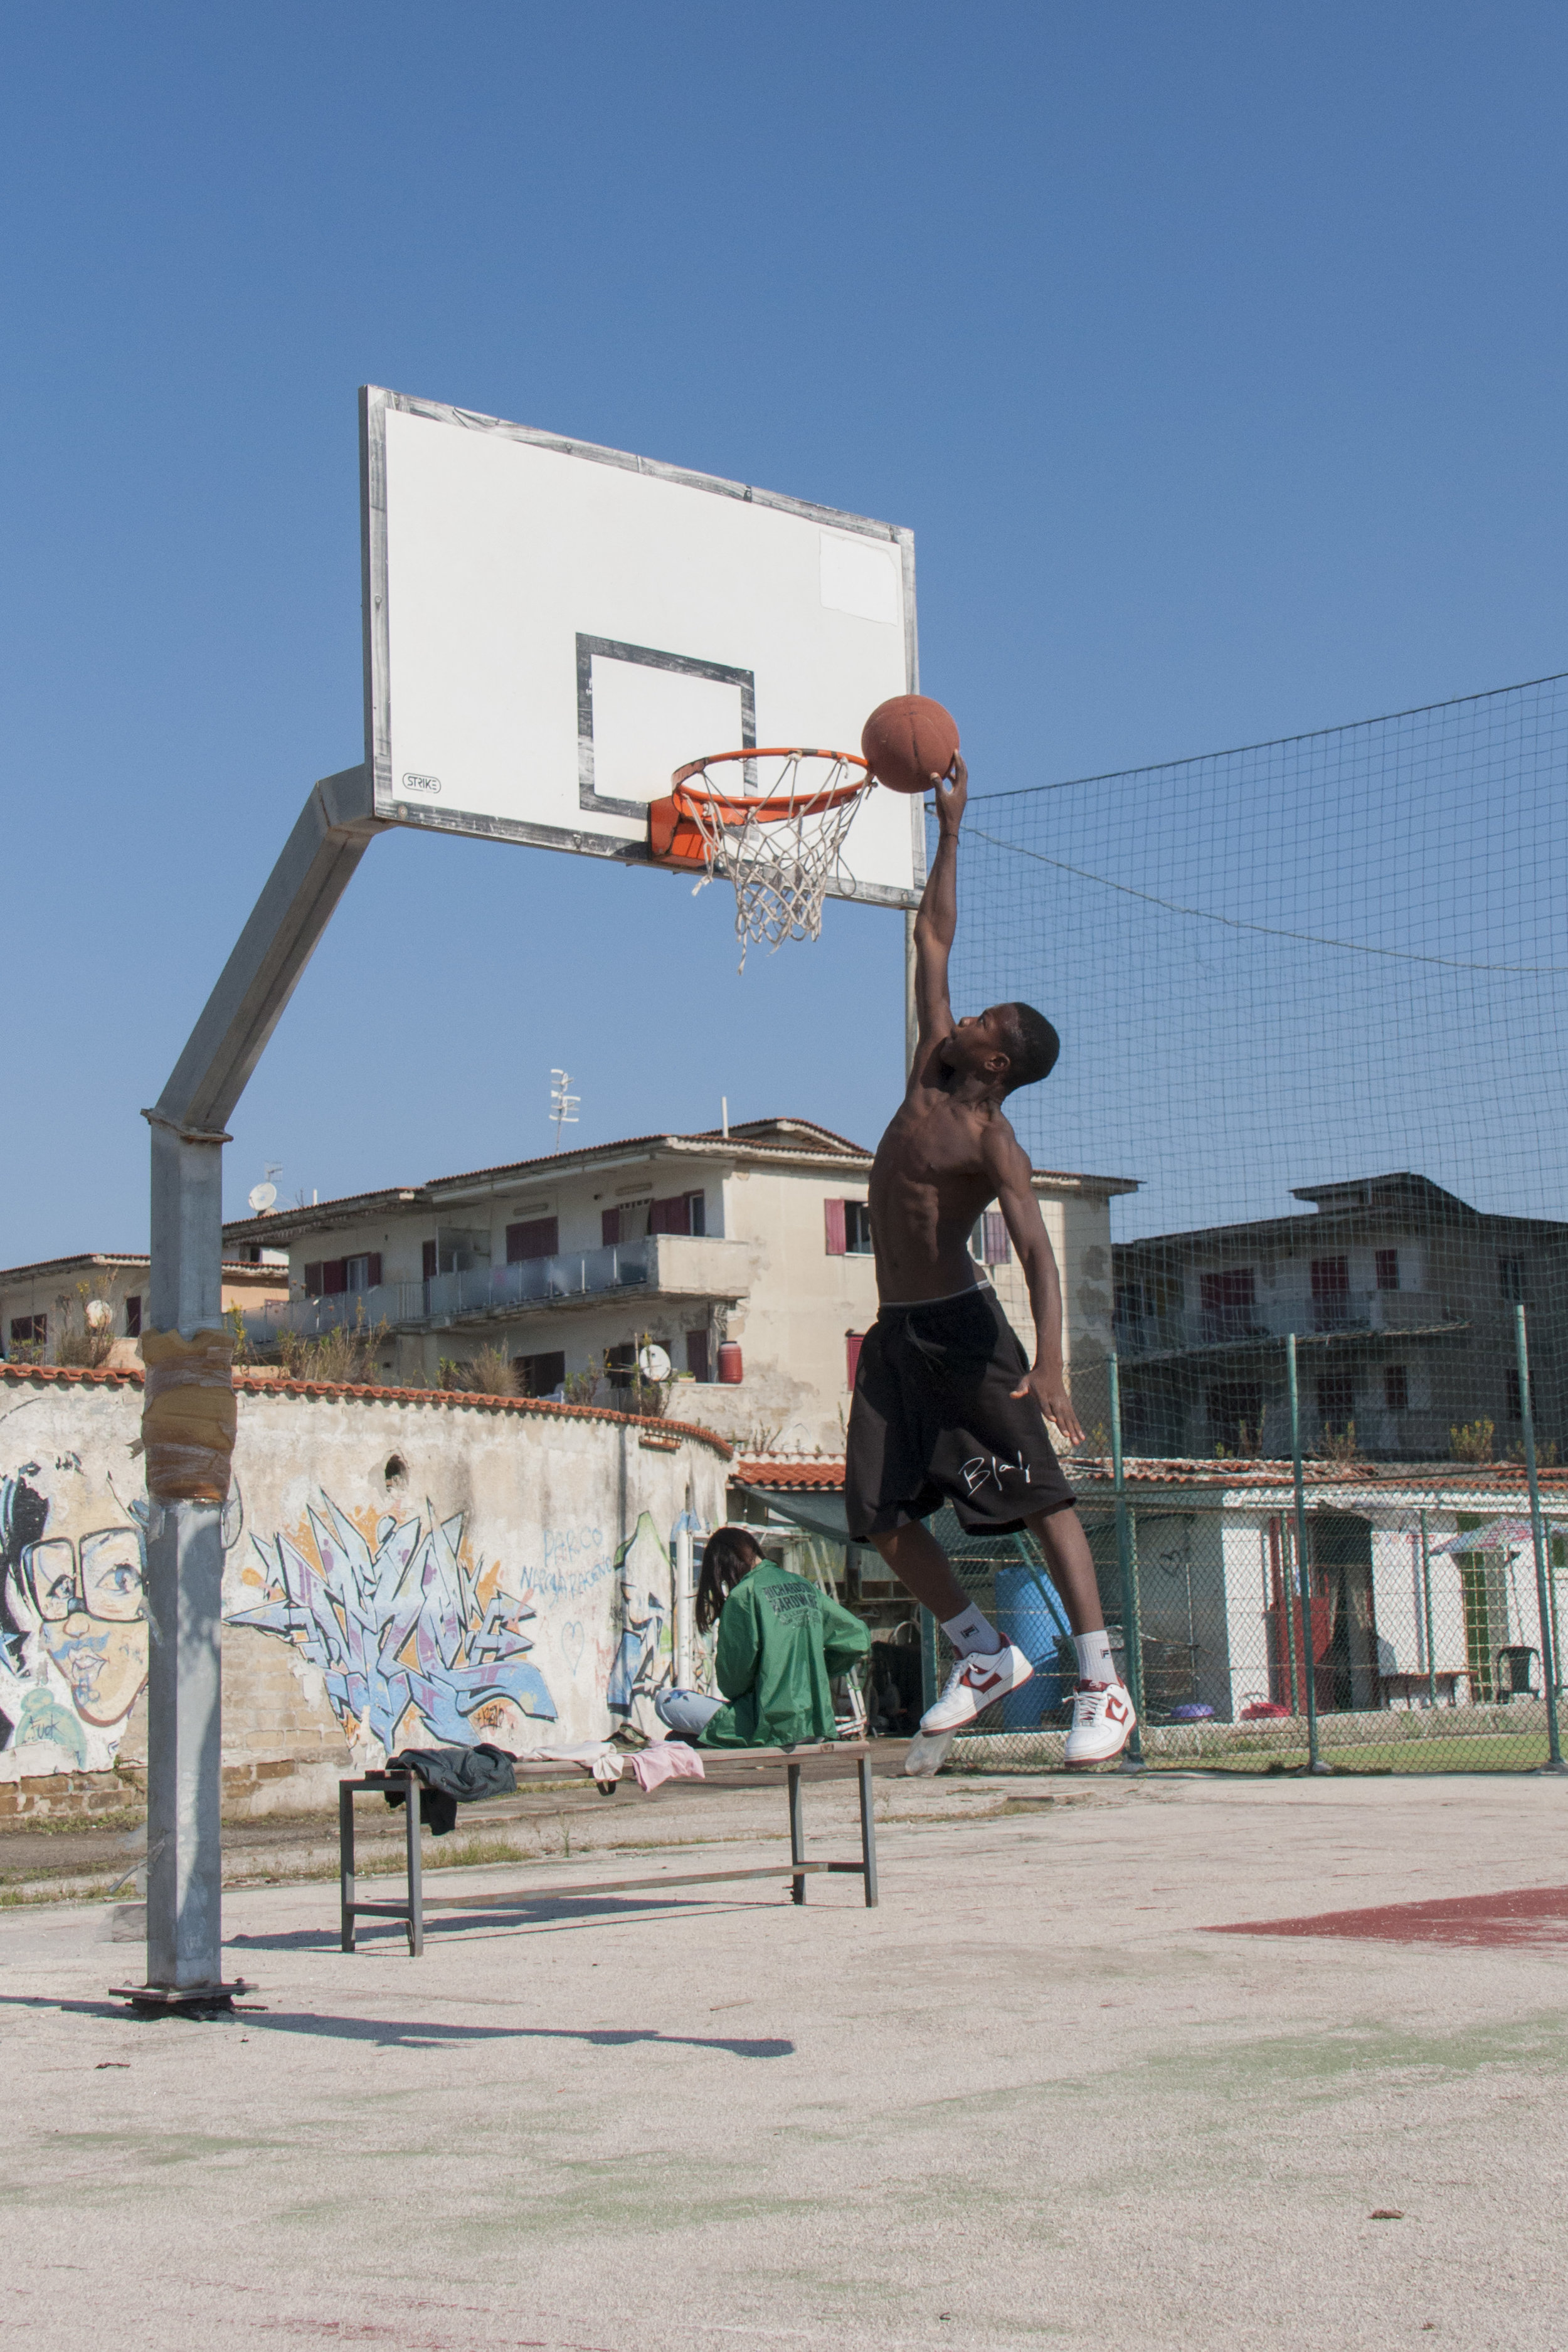 Practice makes perfect: Miracolo, a member of the Tam Tam Basket, attempting a dunk. Castel Volturno. Naples, Italy.